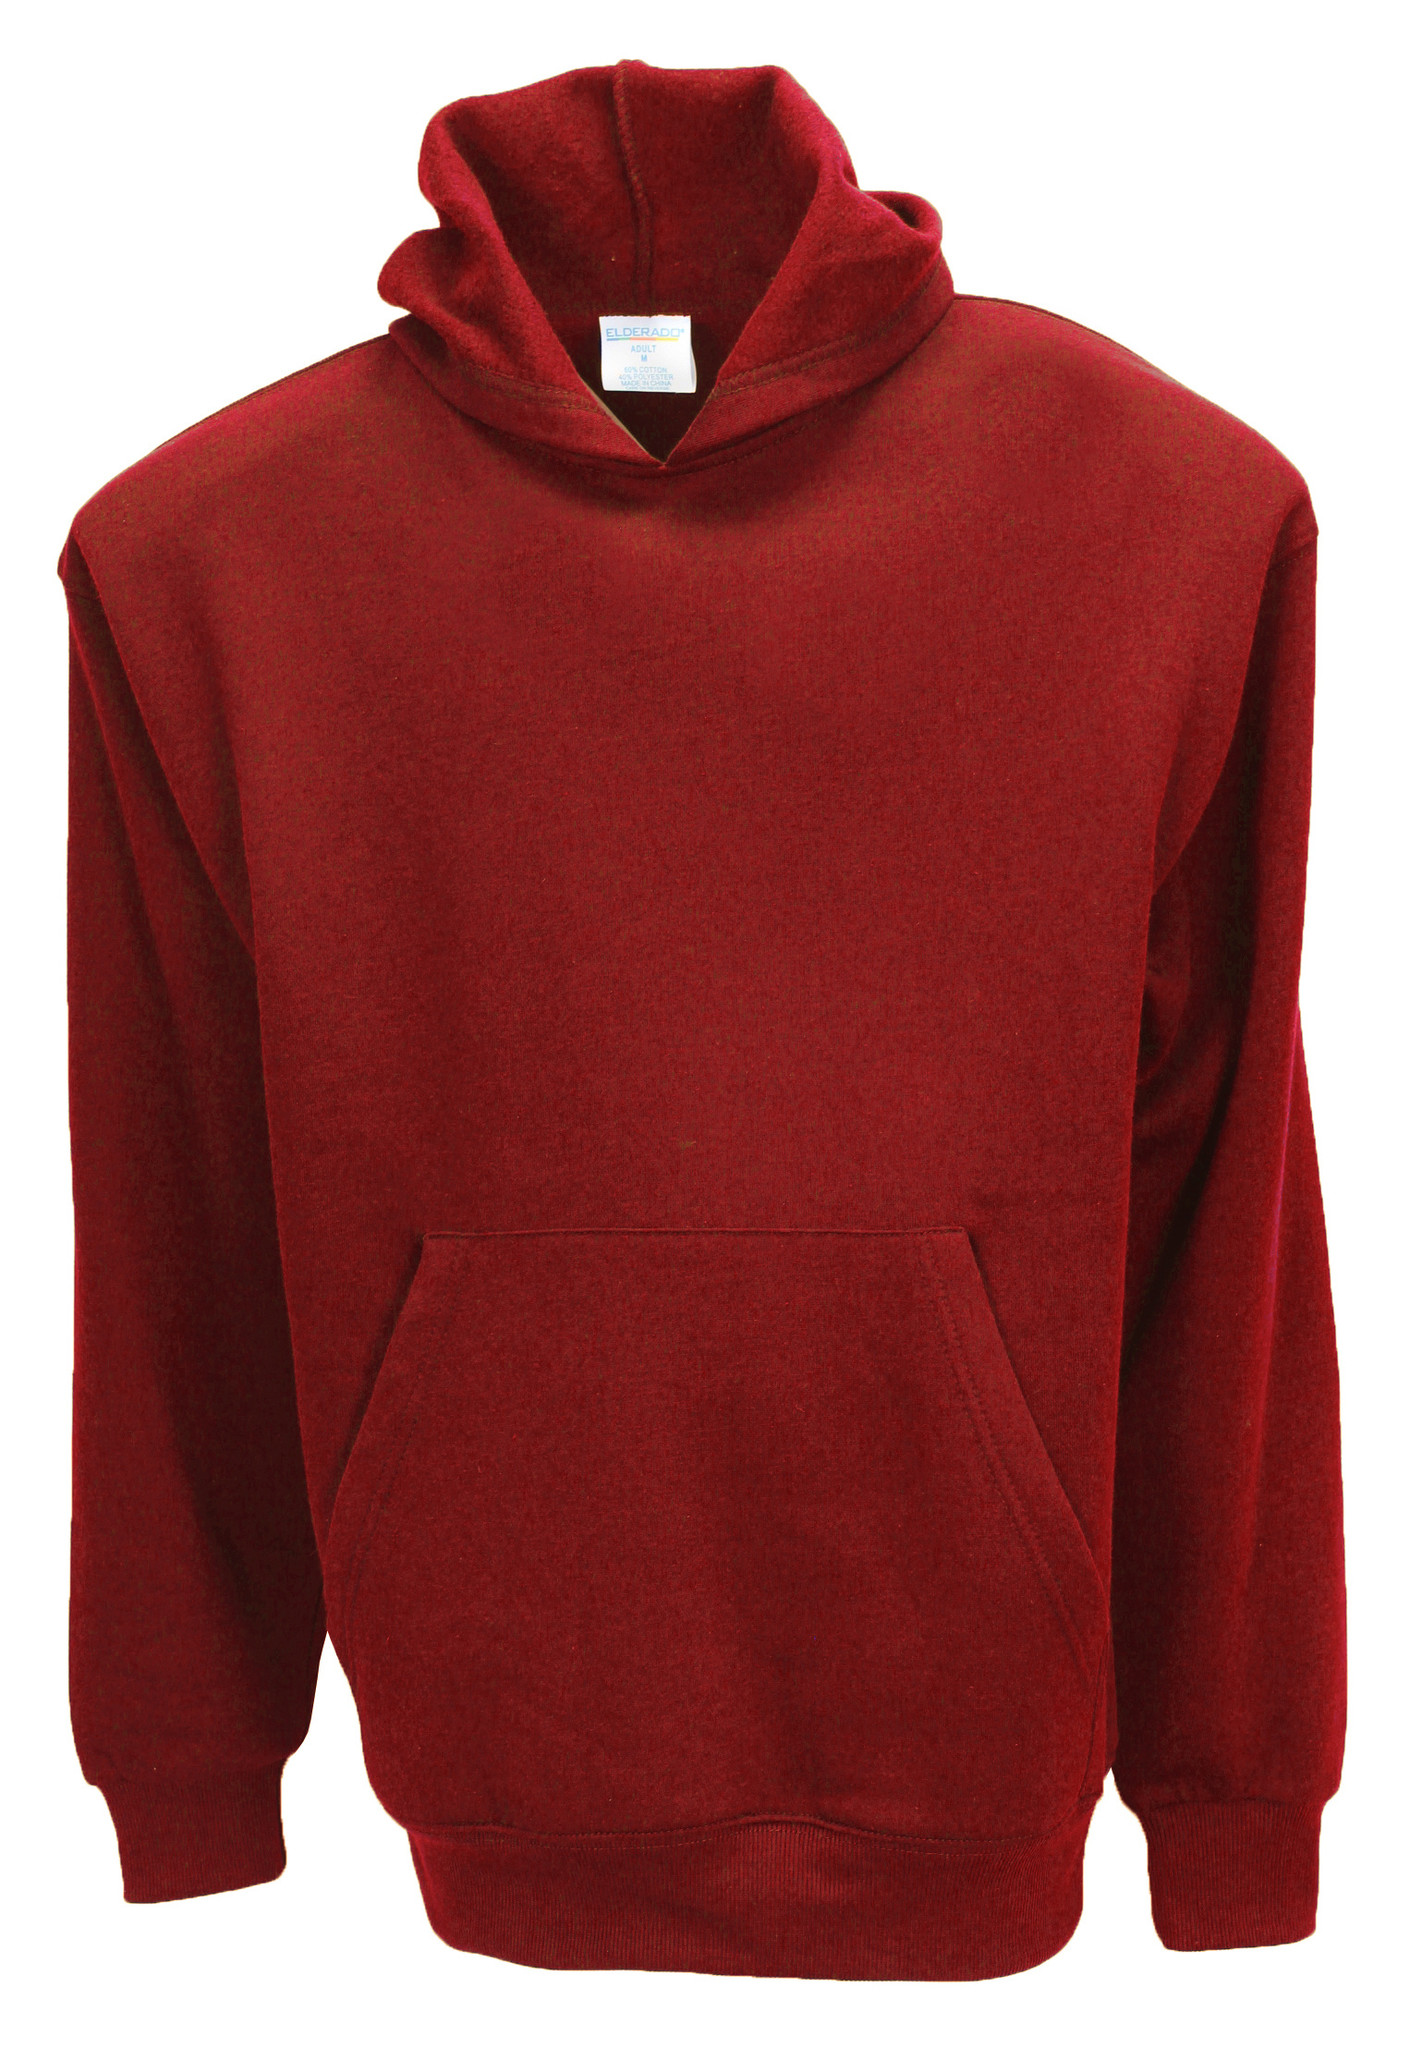 St. Philip Hooded Sweatshirt with Embroidered Logo